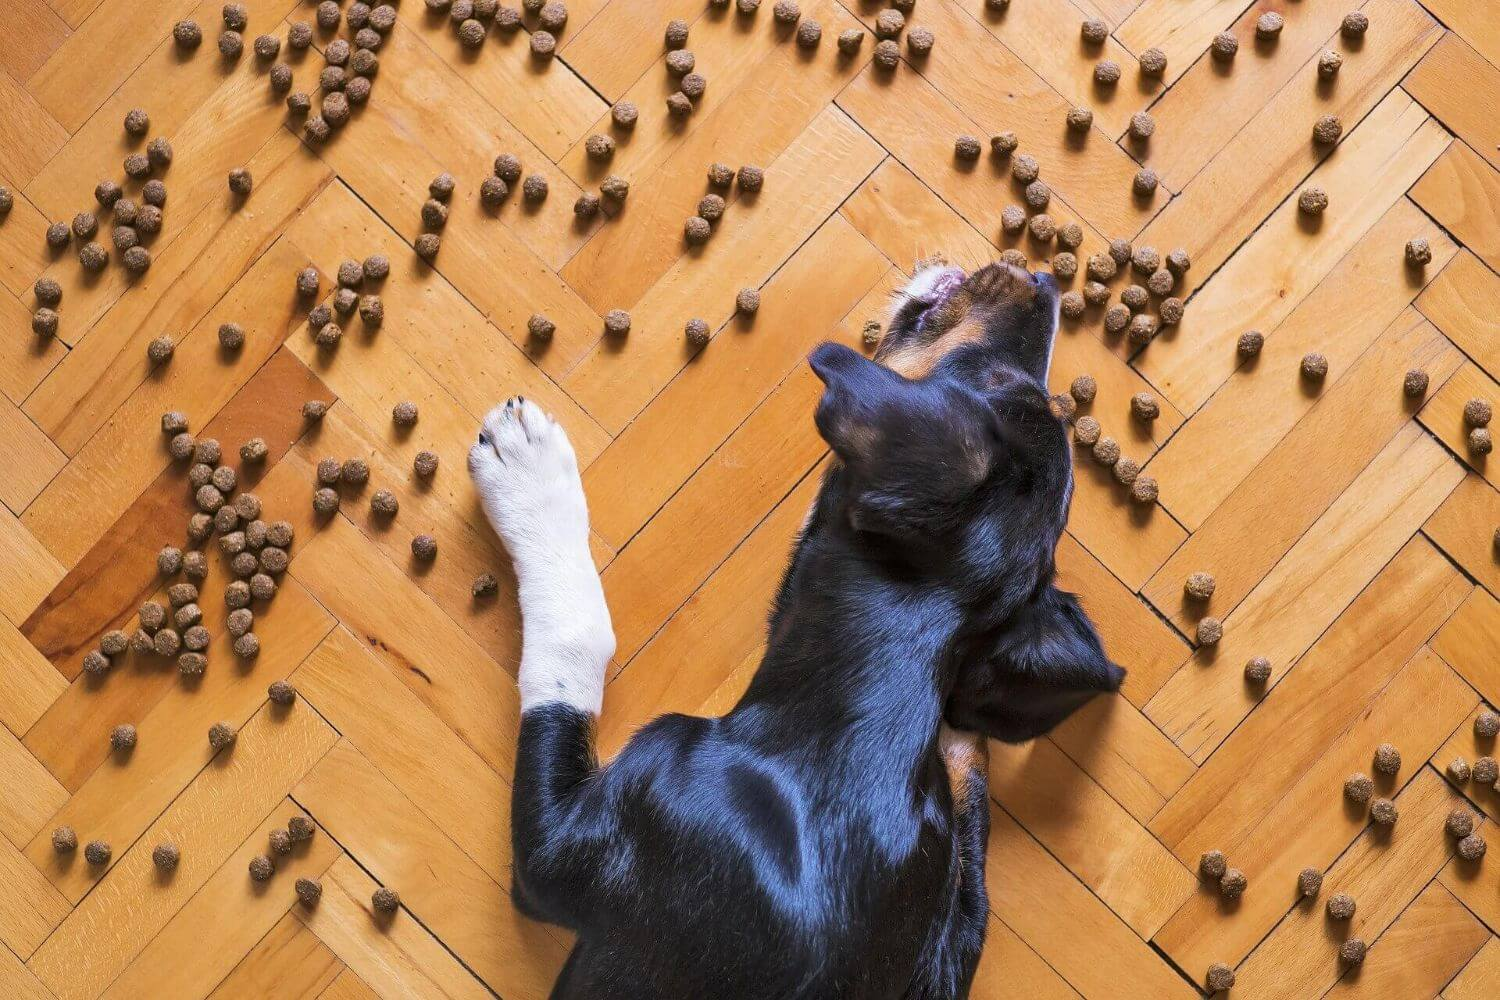 My dog eats too fast: why and what to do?